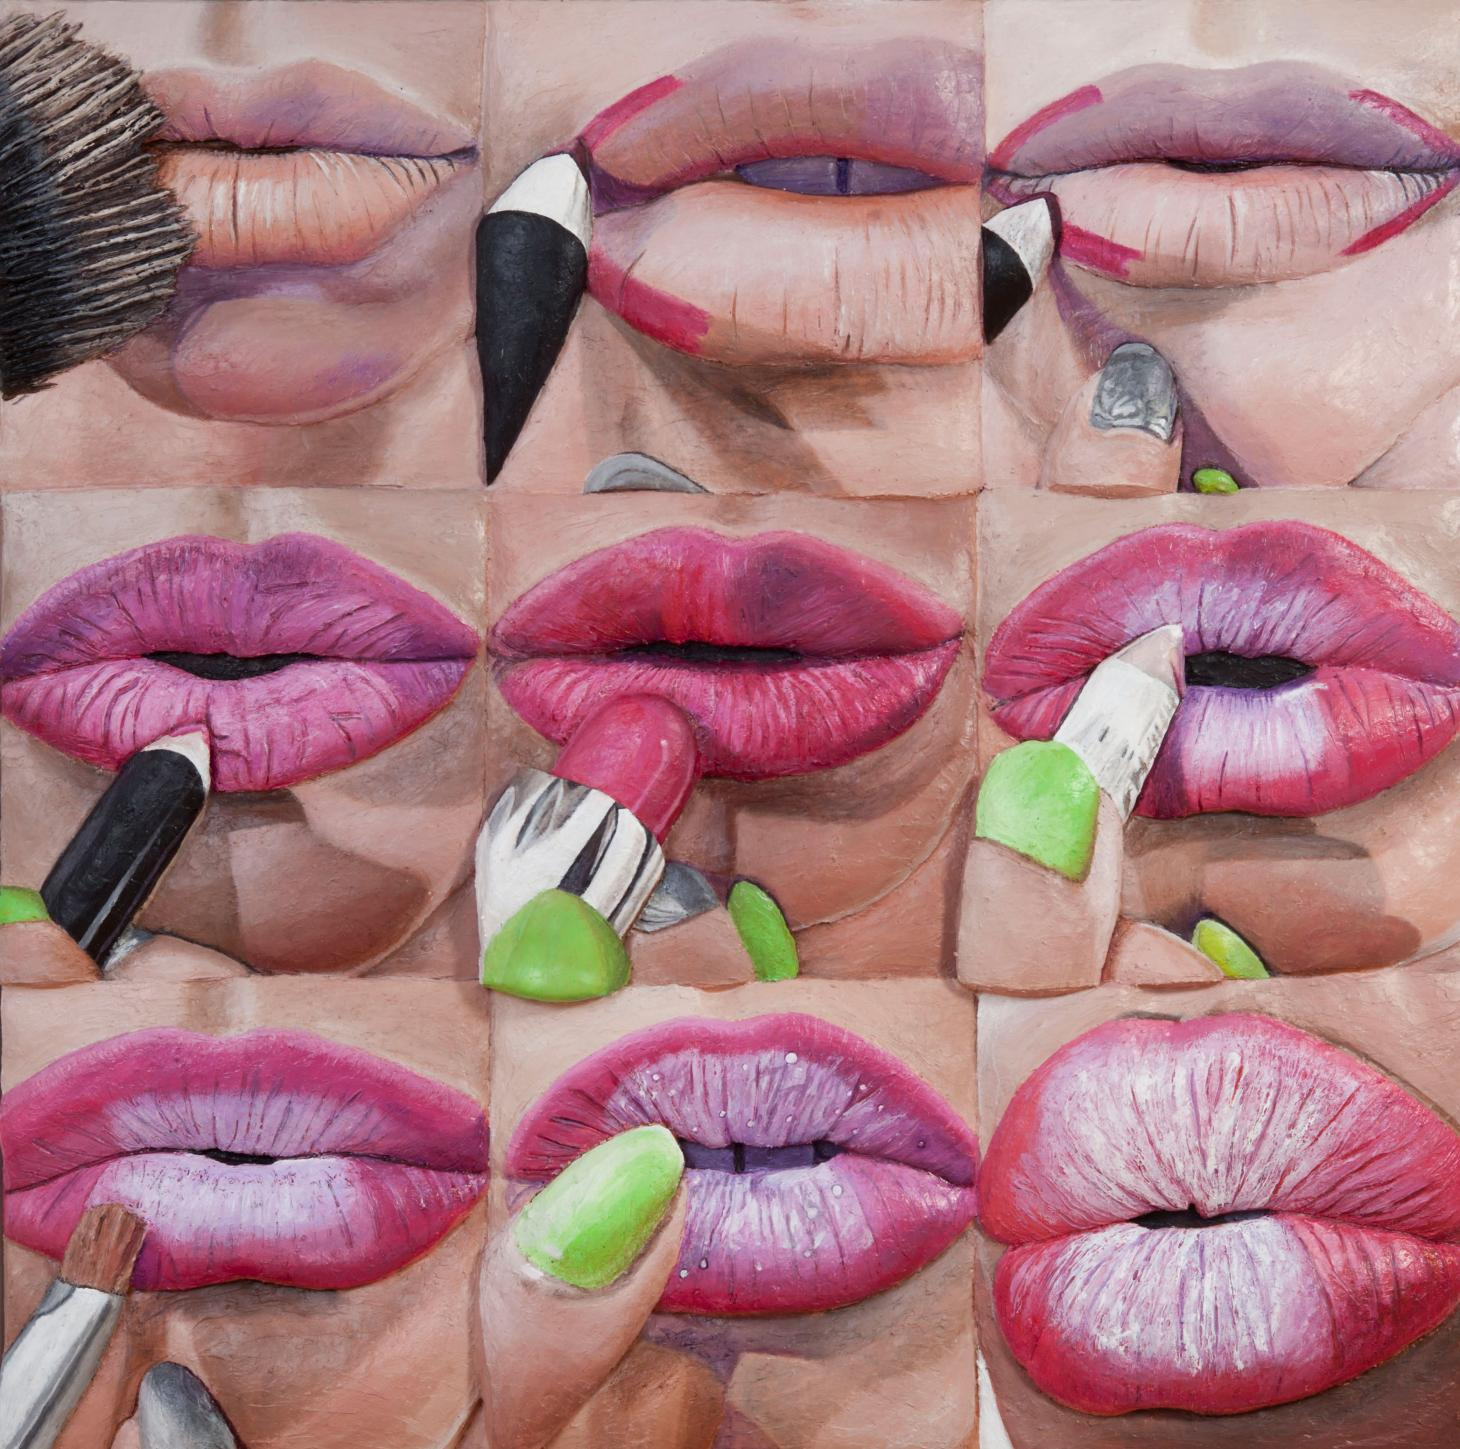 paintings of lips being applied with make-up